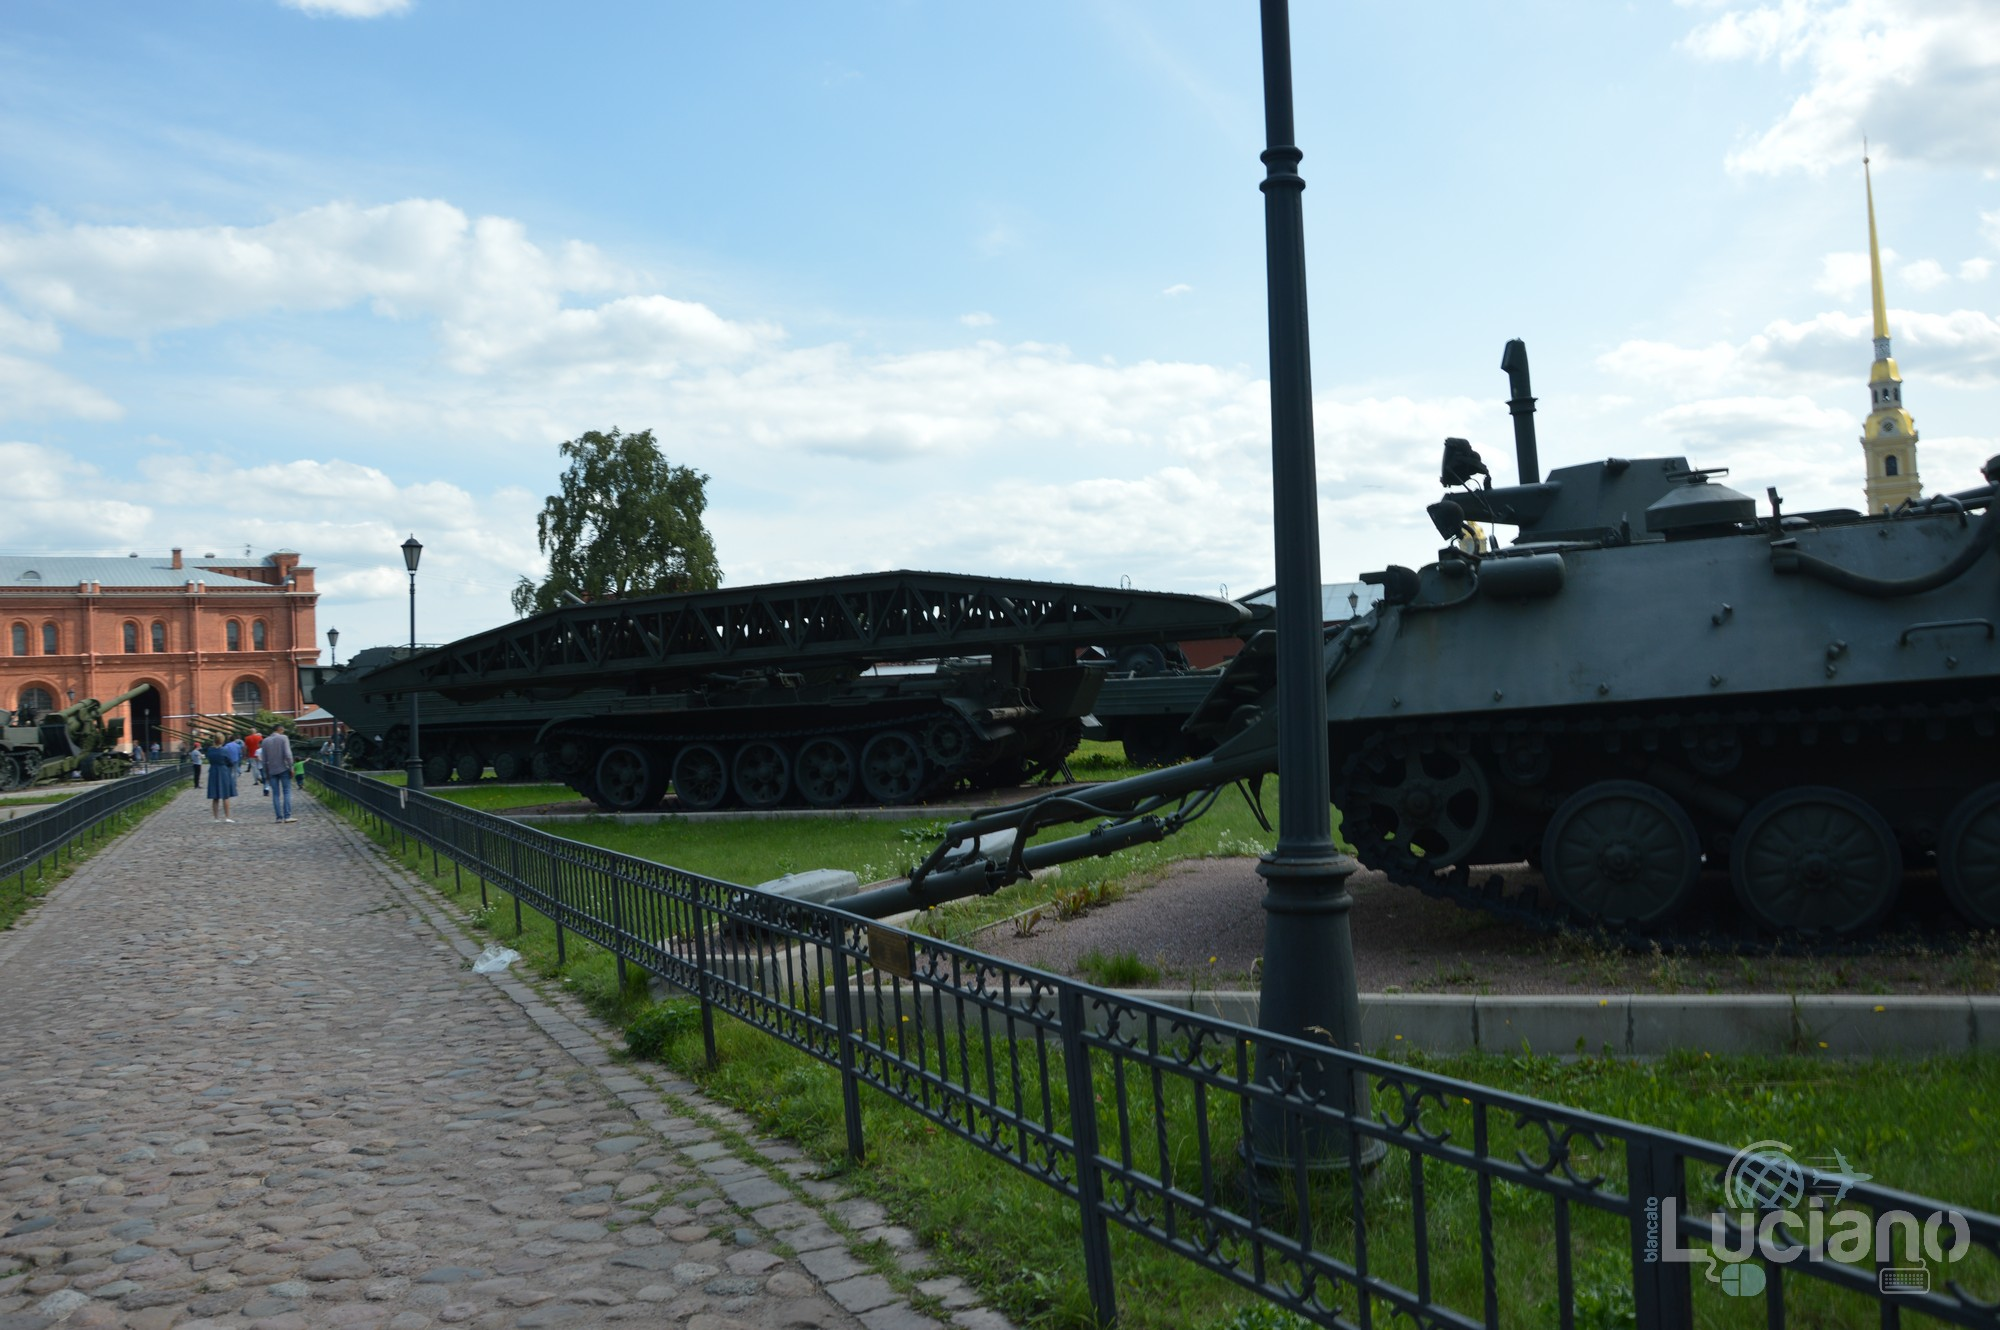 Military-Historical-Museum-of-Artillery-Engineer-and-Signal-Corps-St-Petersburg-Russia-Luciano-Blancato- (88)